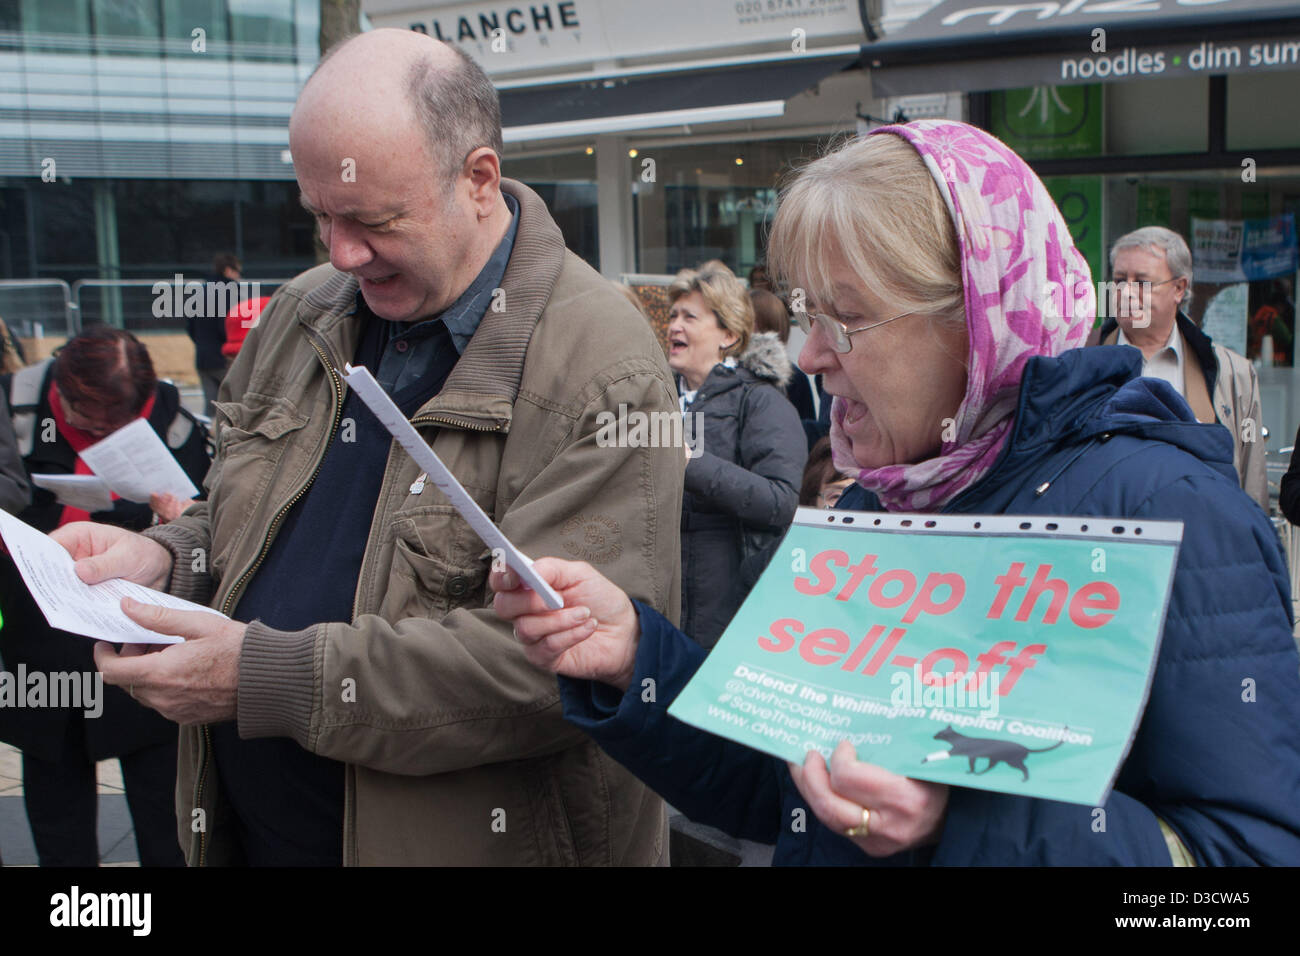 Hammersmith, London, UK. 16th February 2013. Couple join in singing at NHS announce closure of A&E & acute - Stock Image